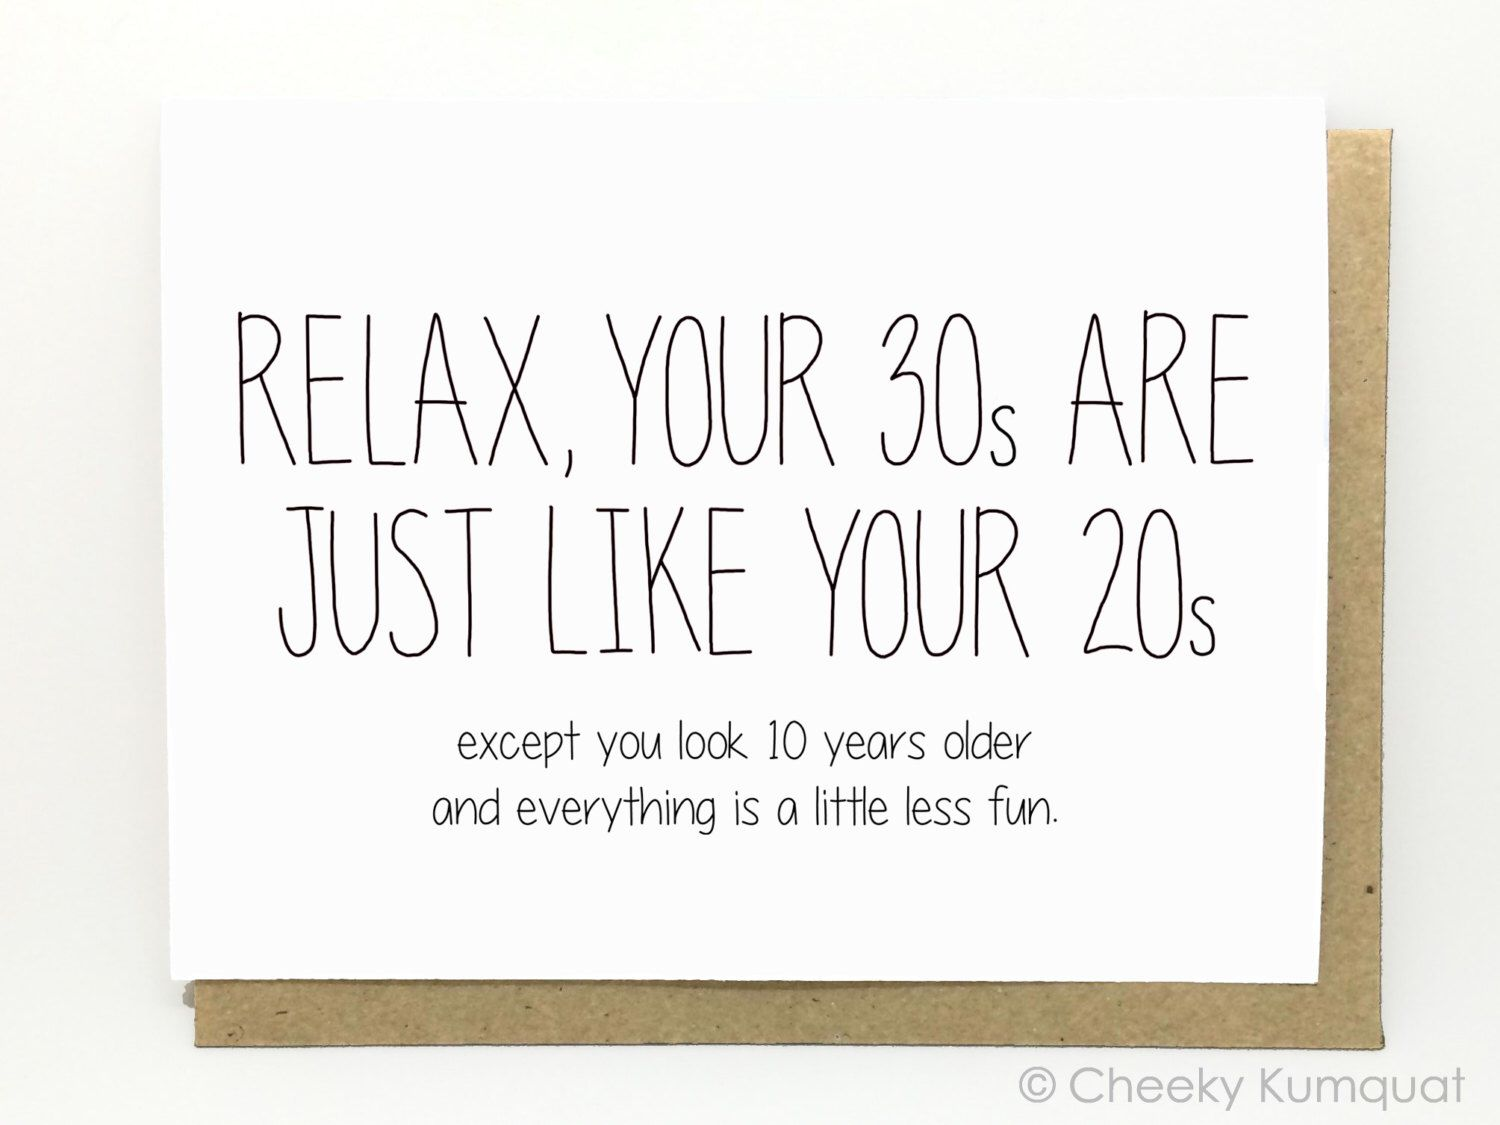 Funny birthday card 30th birthday card birthday card relax by funny birthday card 30th birthday card birthday card relax by cheekykumquat on kristyandbryce Image collections